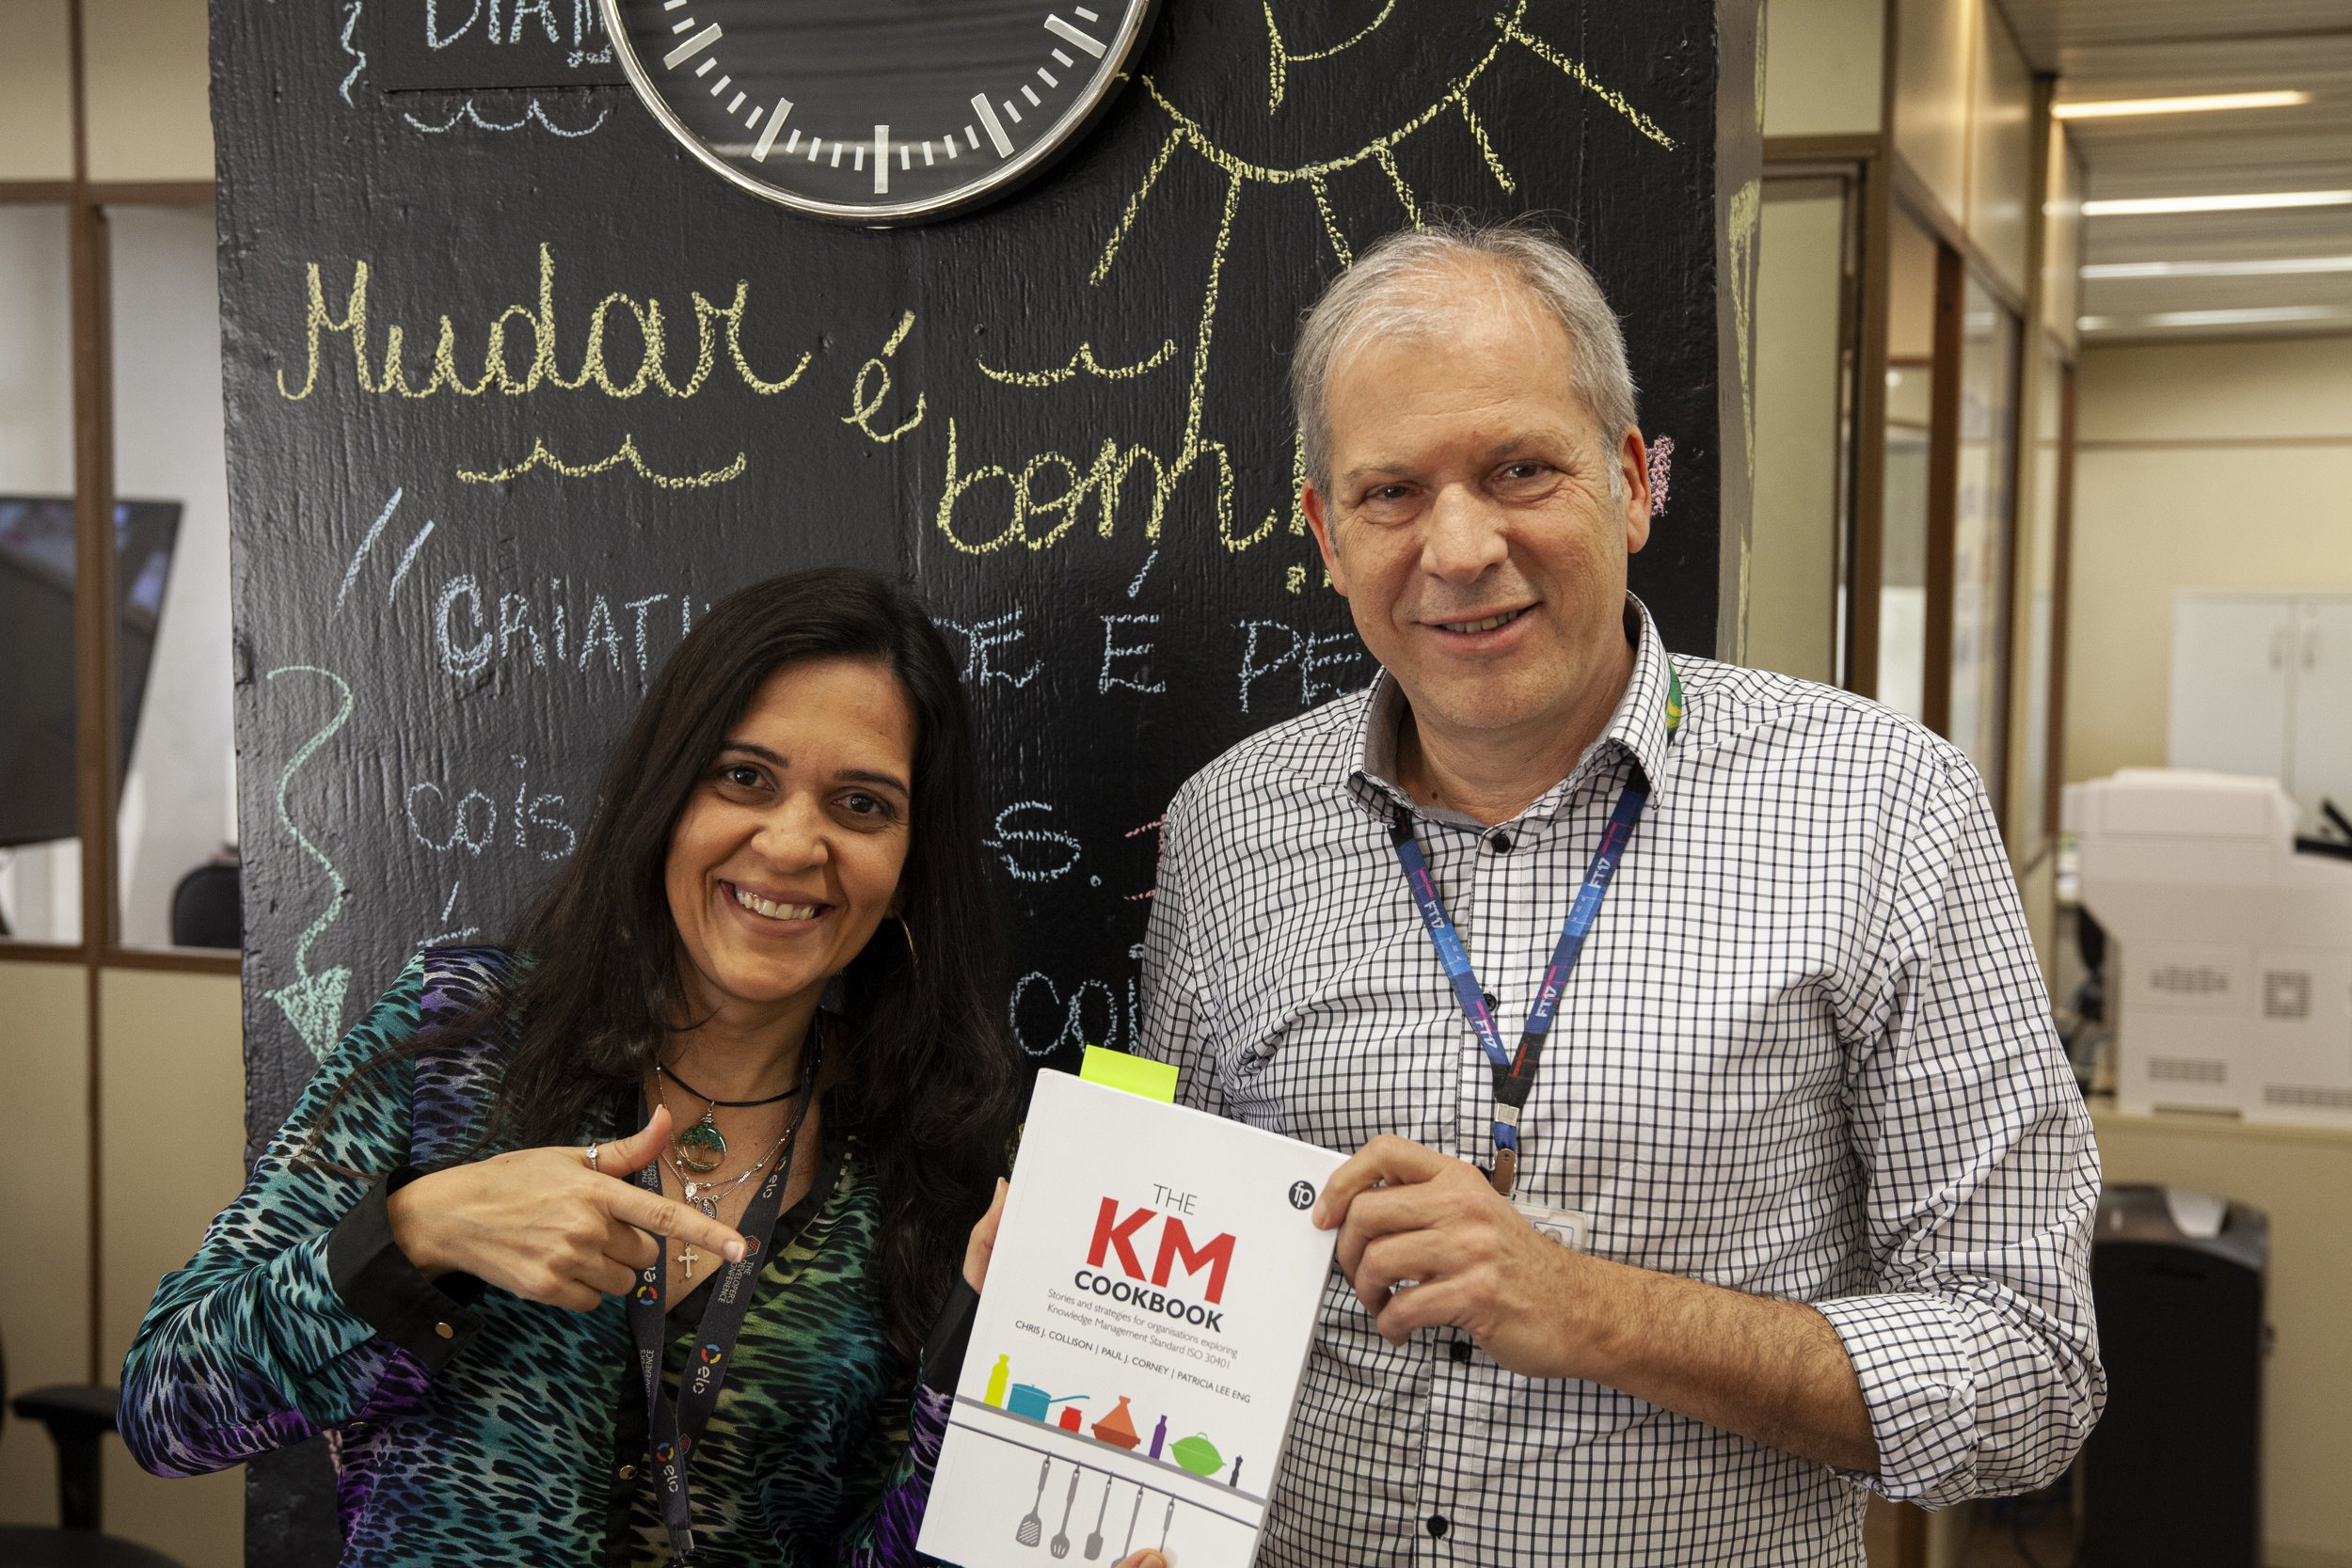 Luciana and Jaeger at Procergs in Brazil with their KM Cookbook…